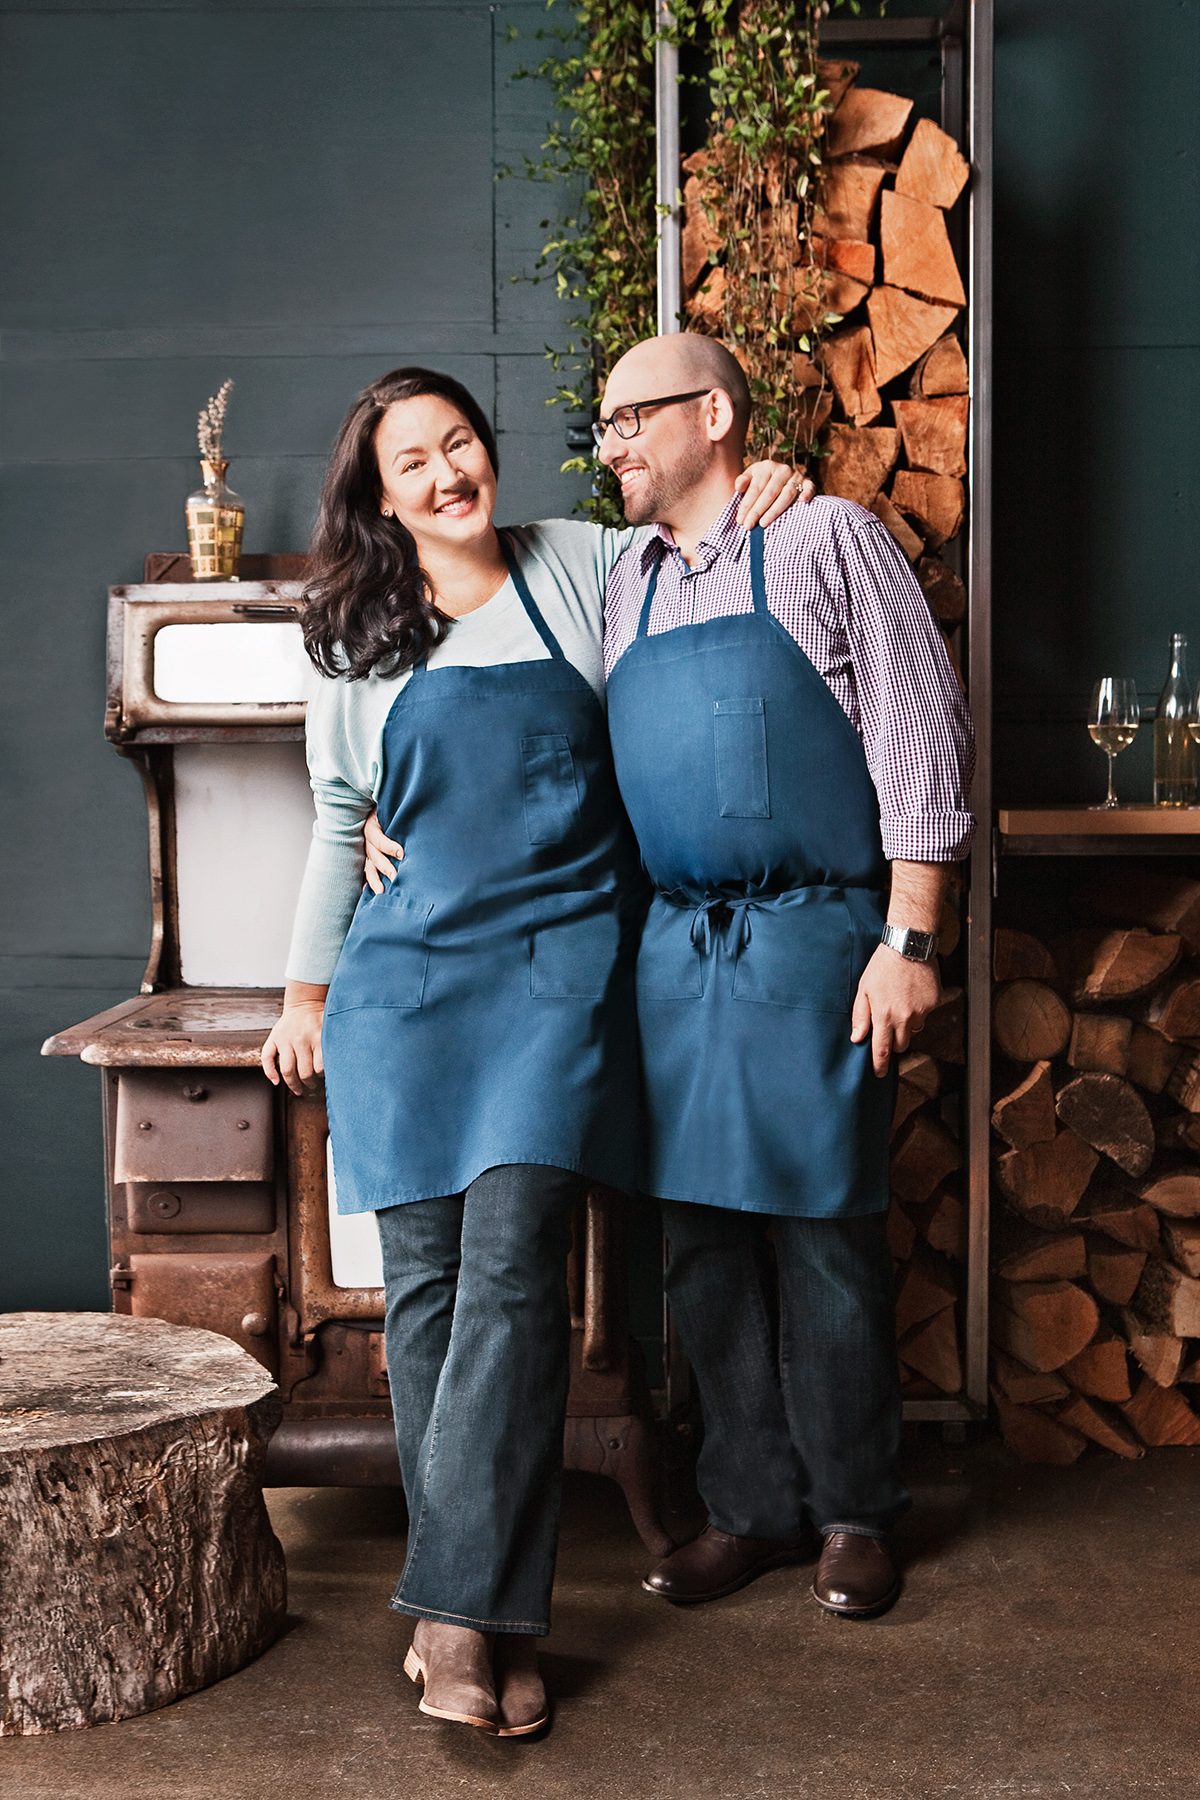 Gabrielle and Greg cooking couple in aprons